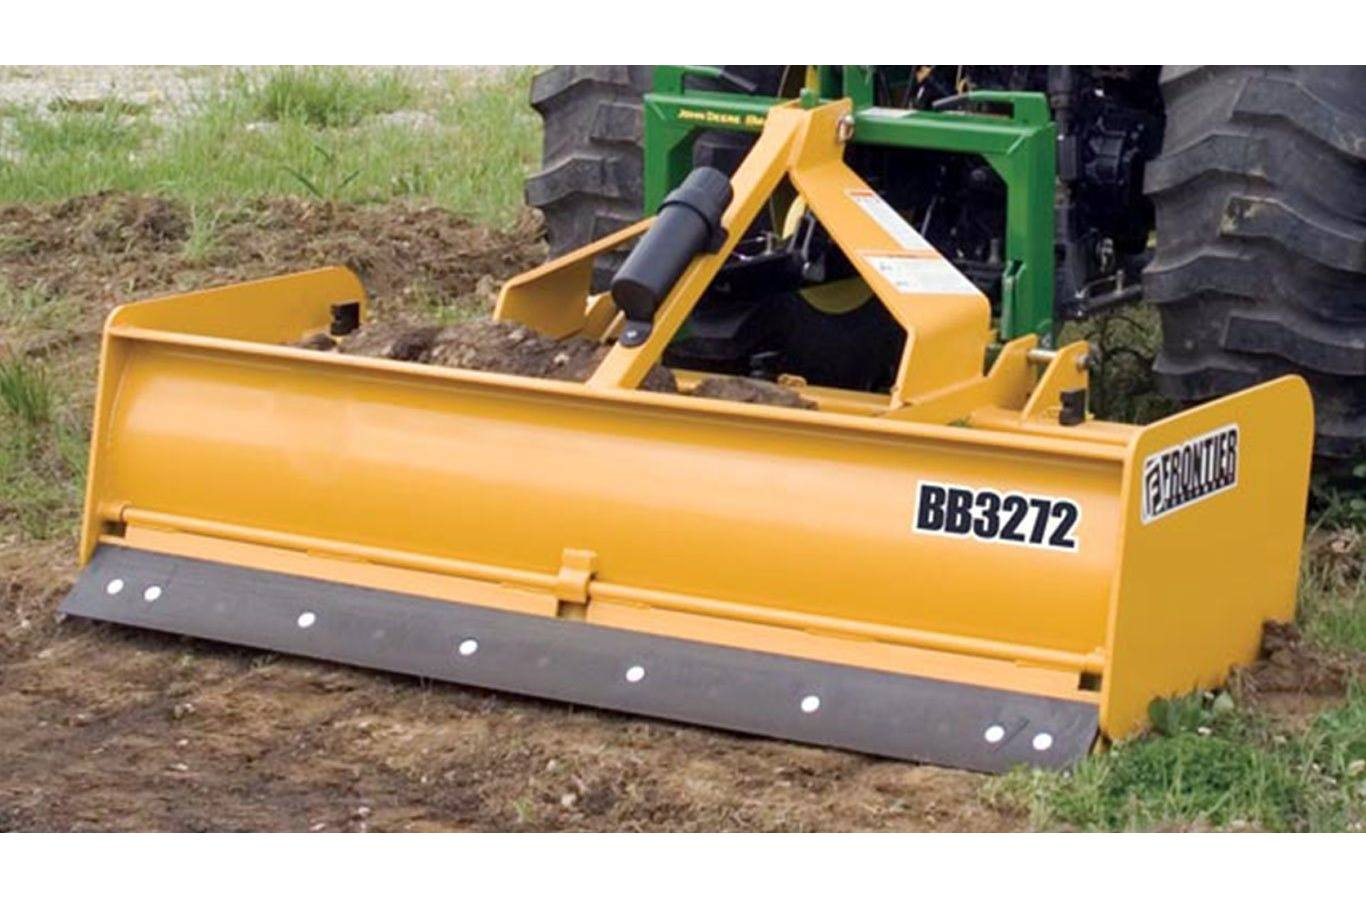 2019 John Deere BB3272 72 in  for sale in Lively, ON